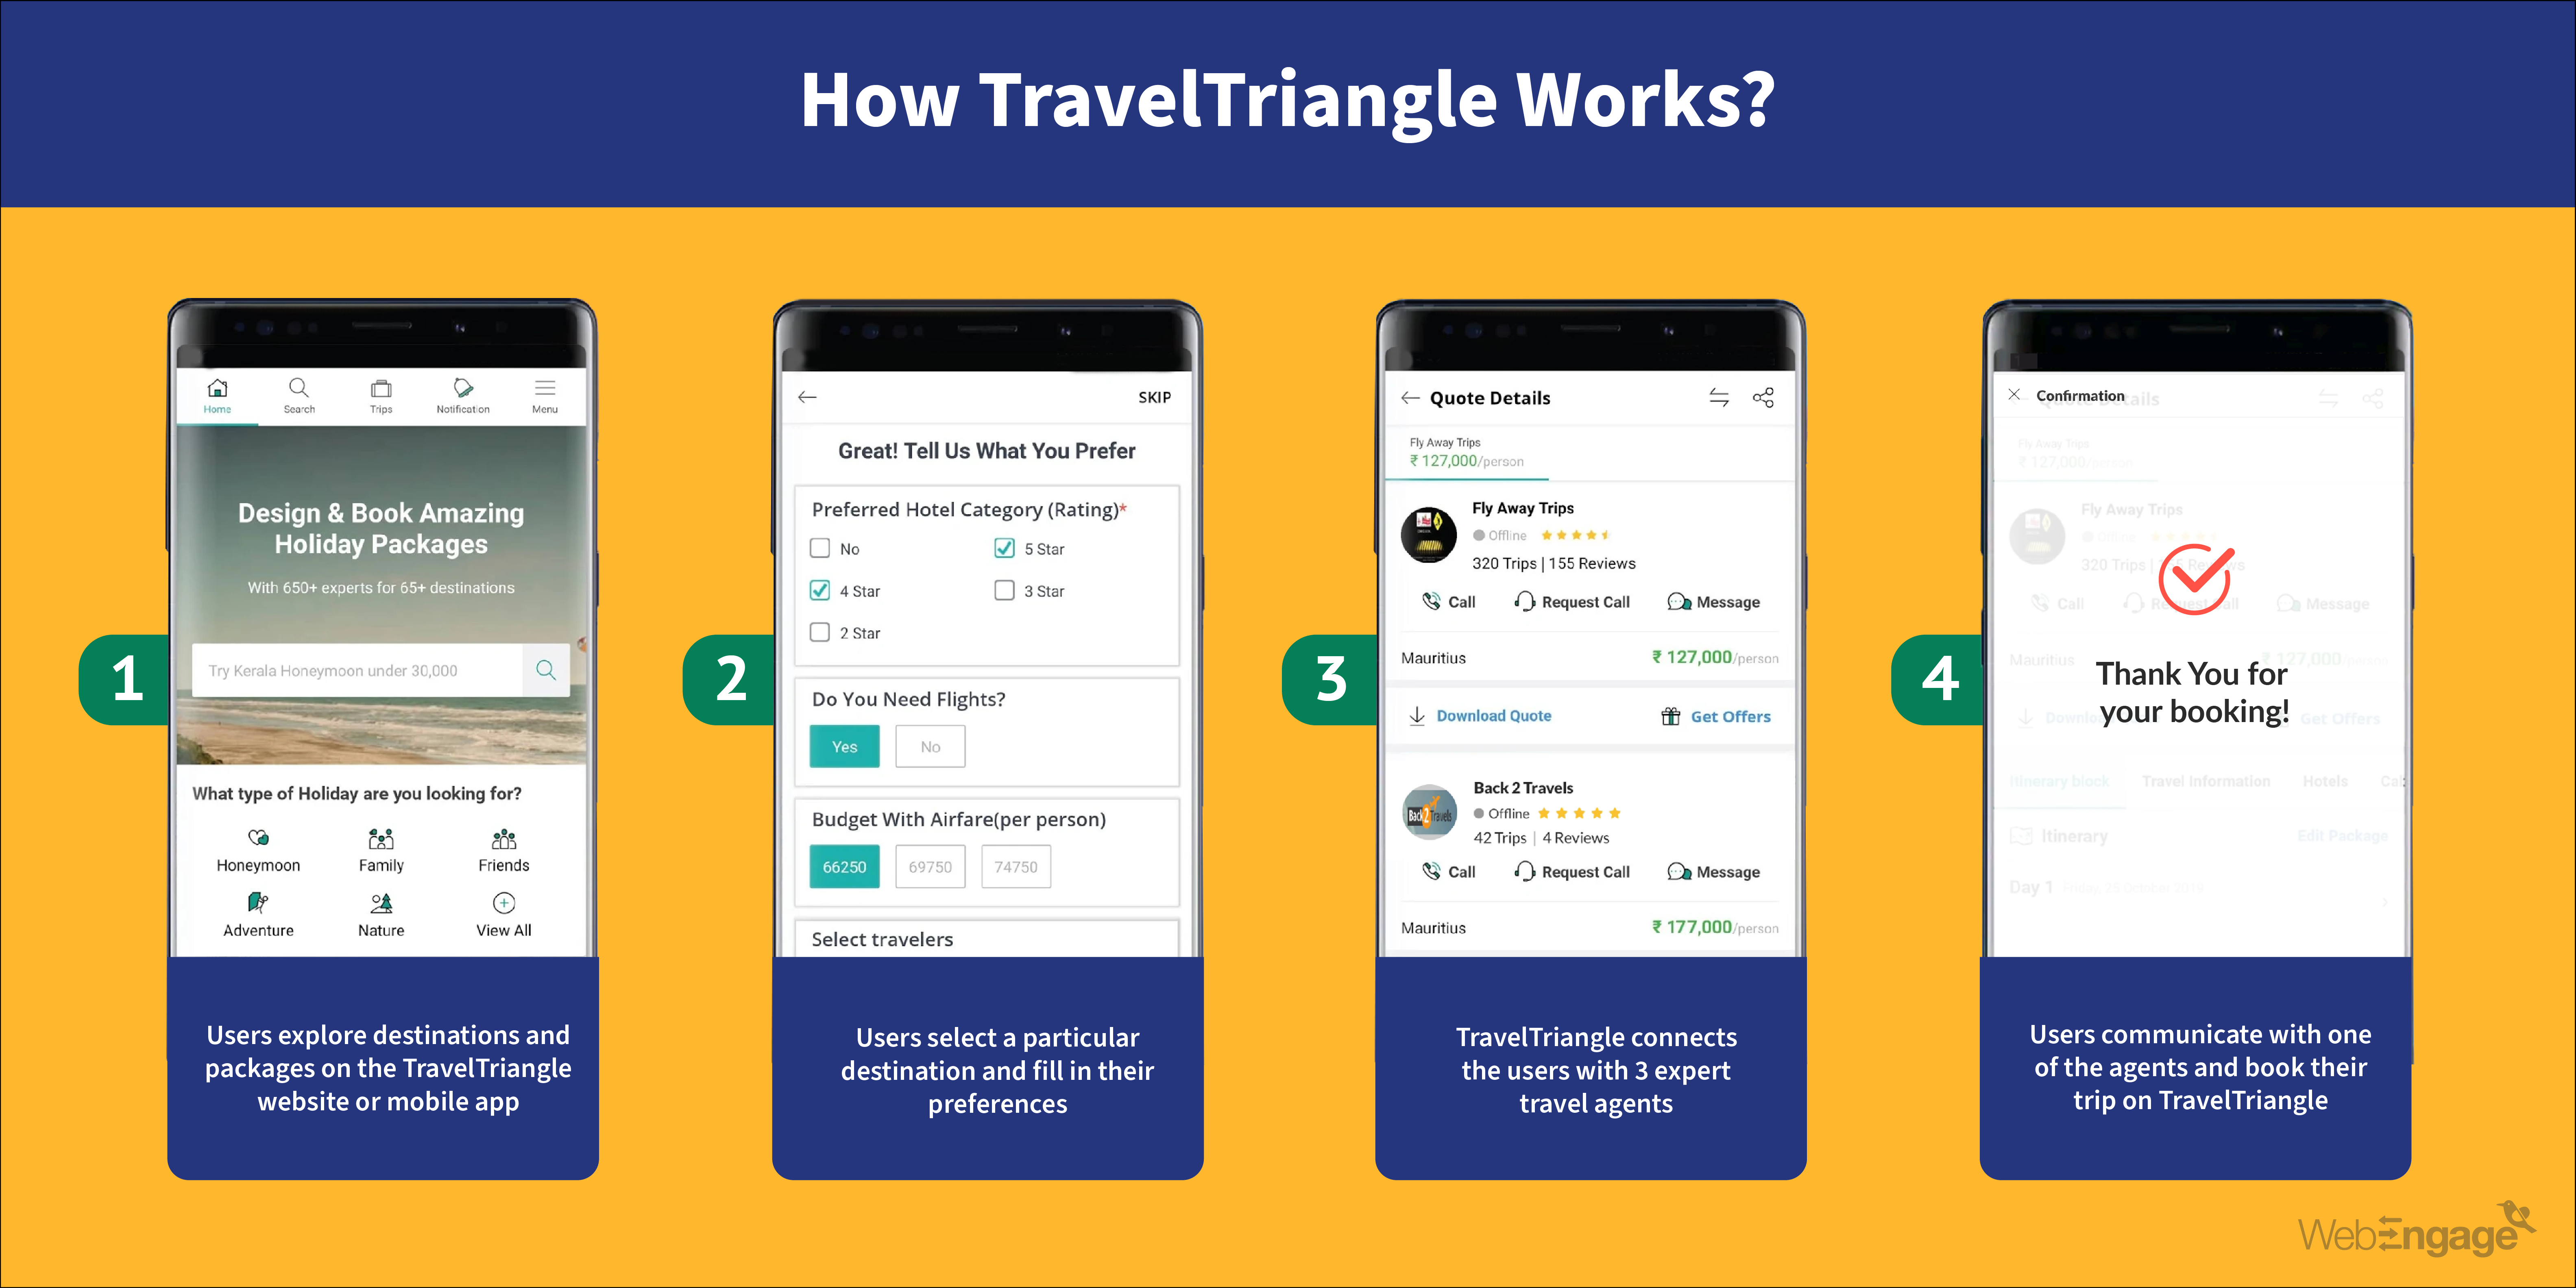 how to book a trip on TravelTriangle